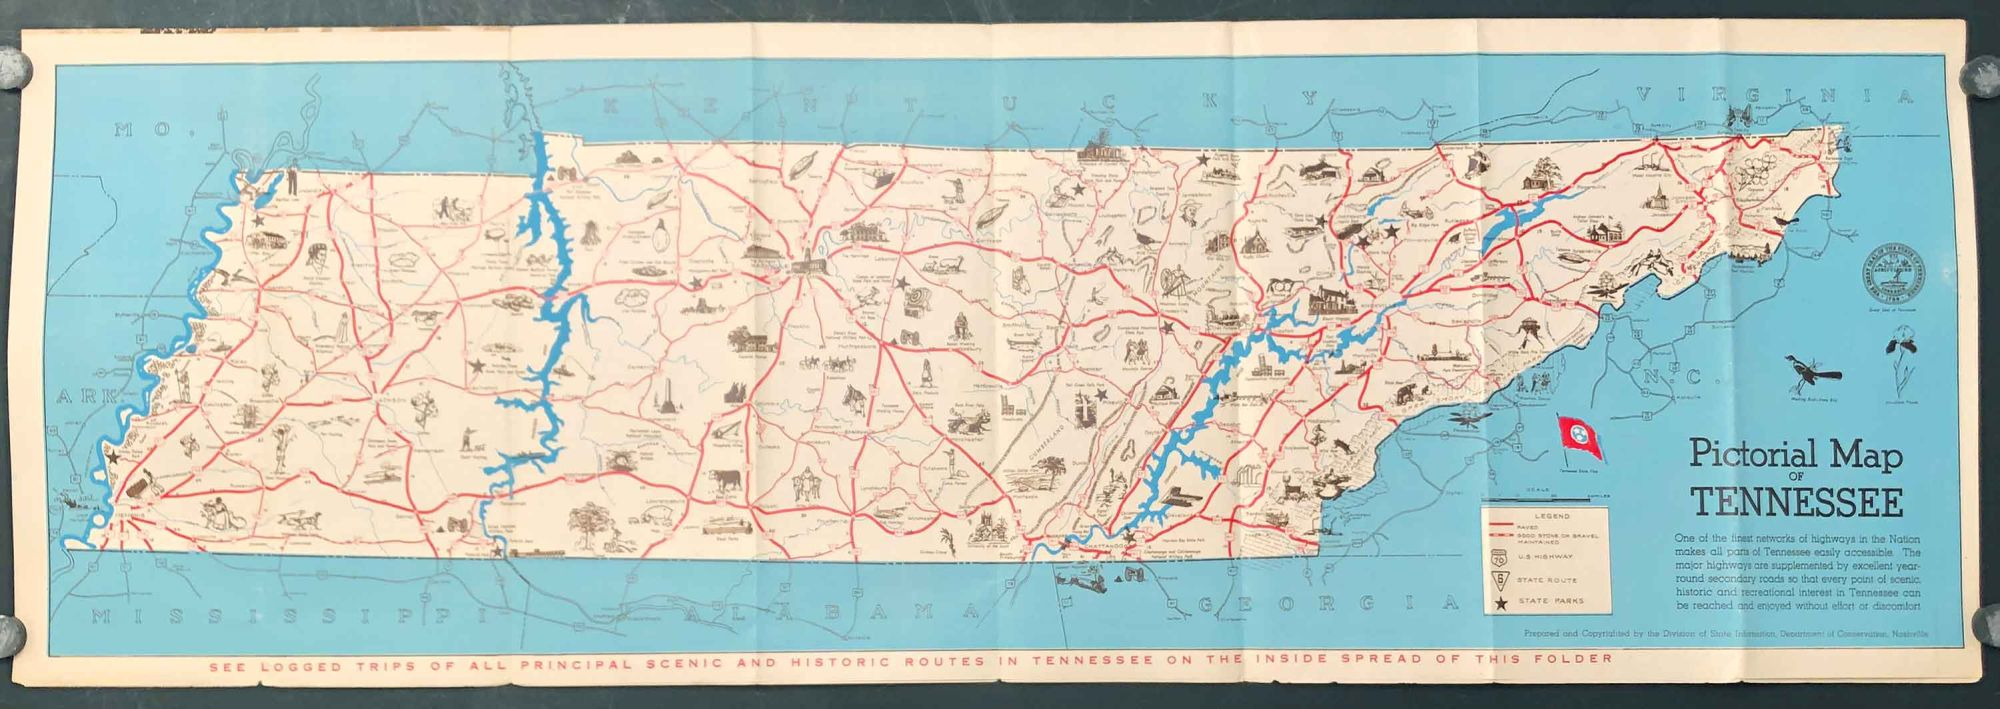 Tourist Guide and Pictorial Map of Tennessee | TENNESSEE